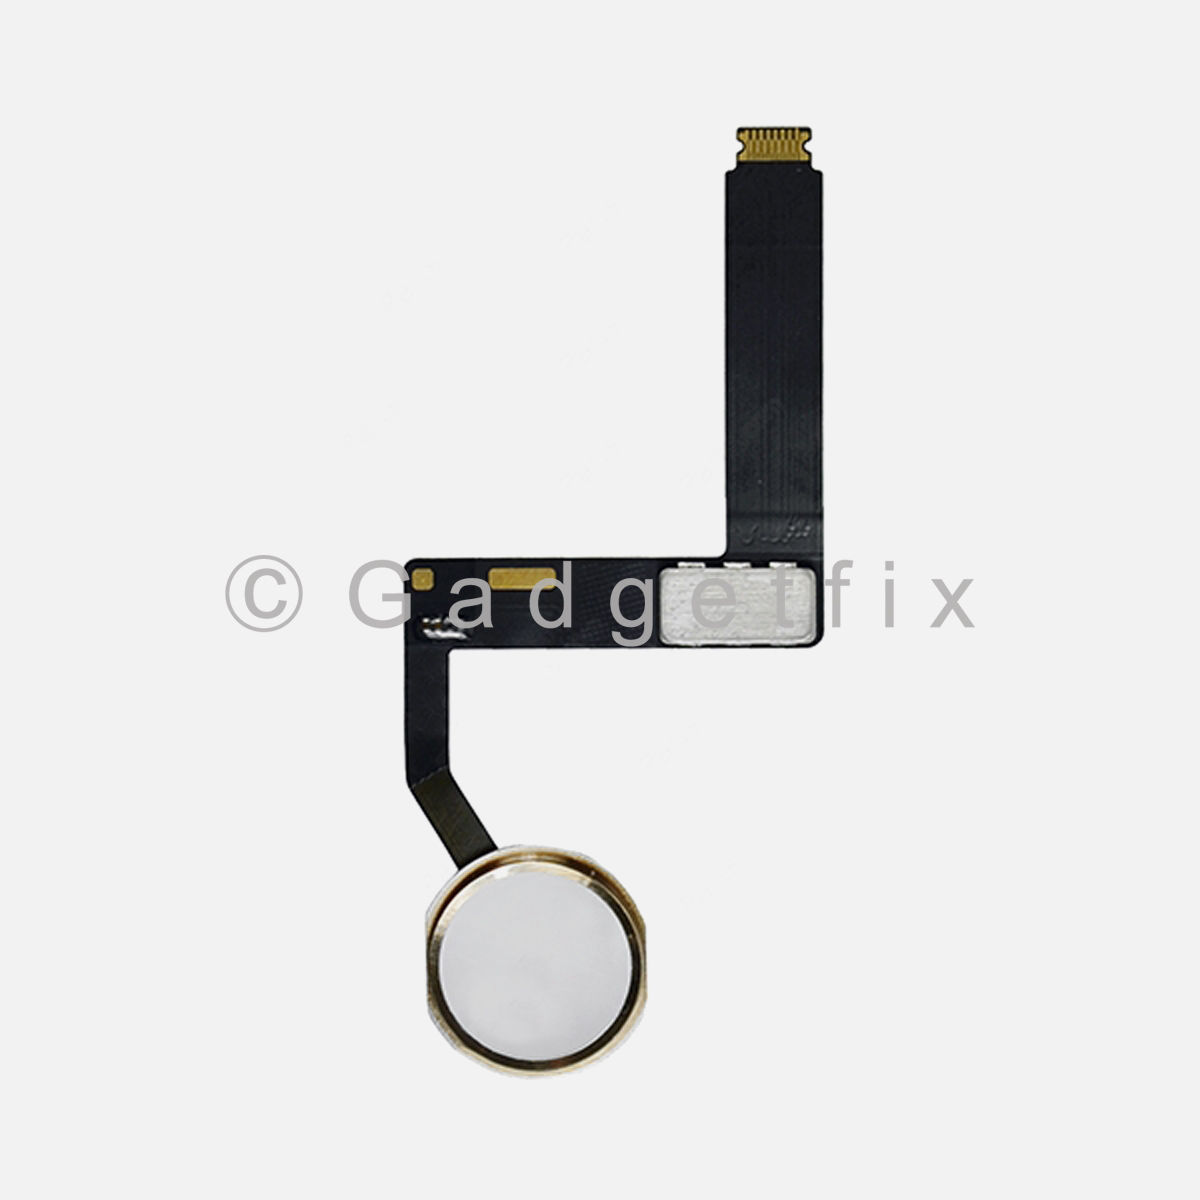 Gold Home Menu Button Flex Cable Replacement For iPad Pro 9.7 A1673 A1674 A1675